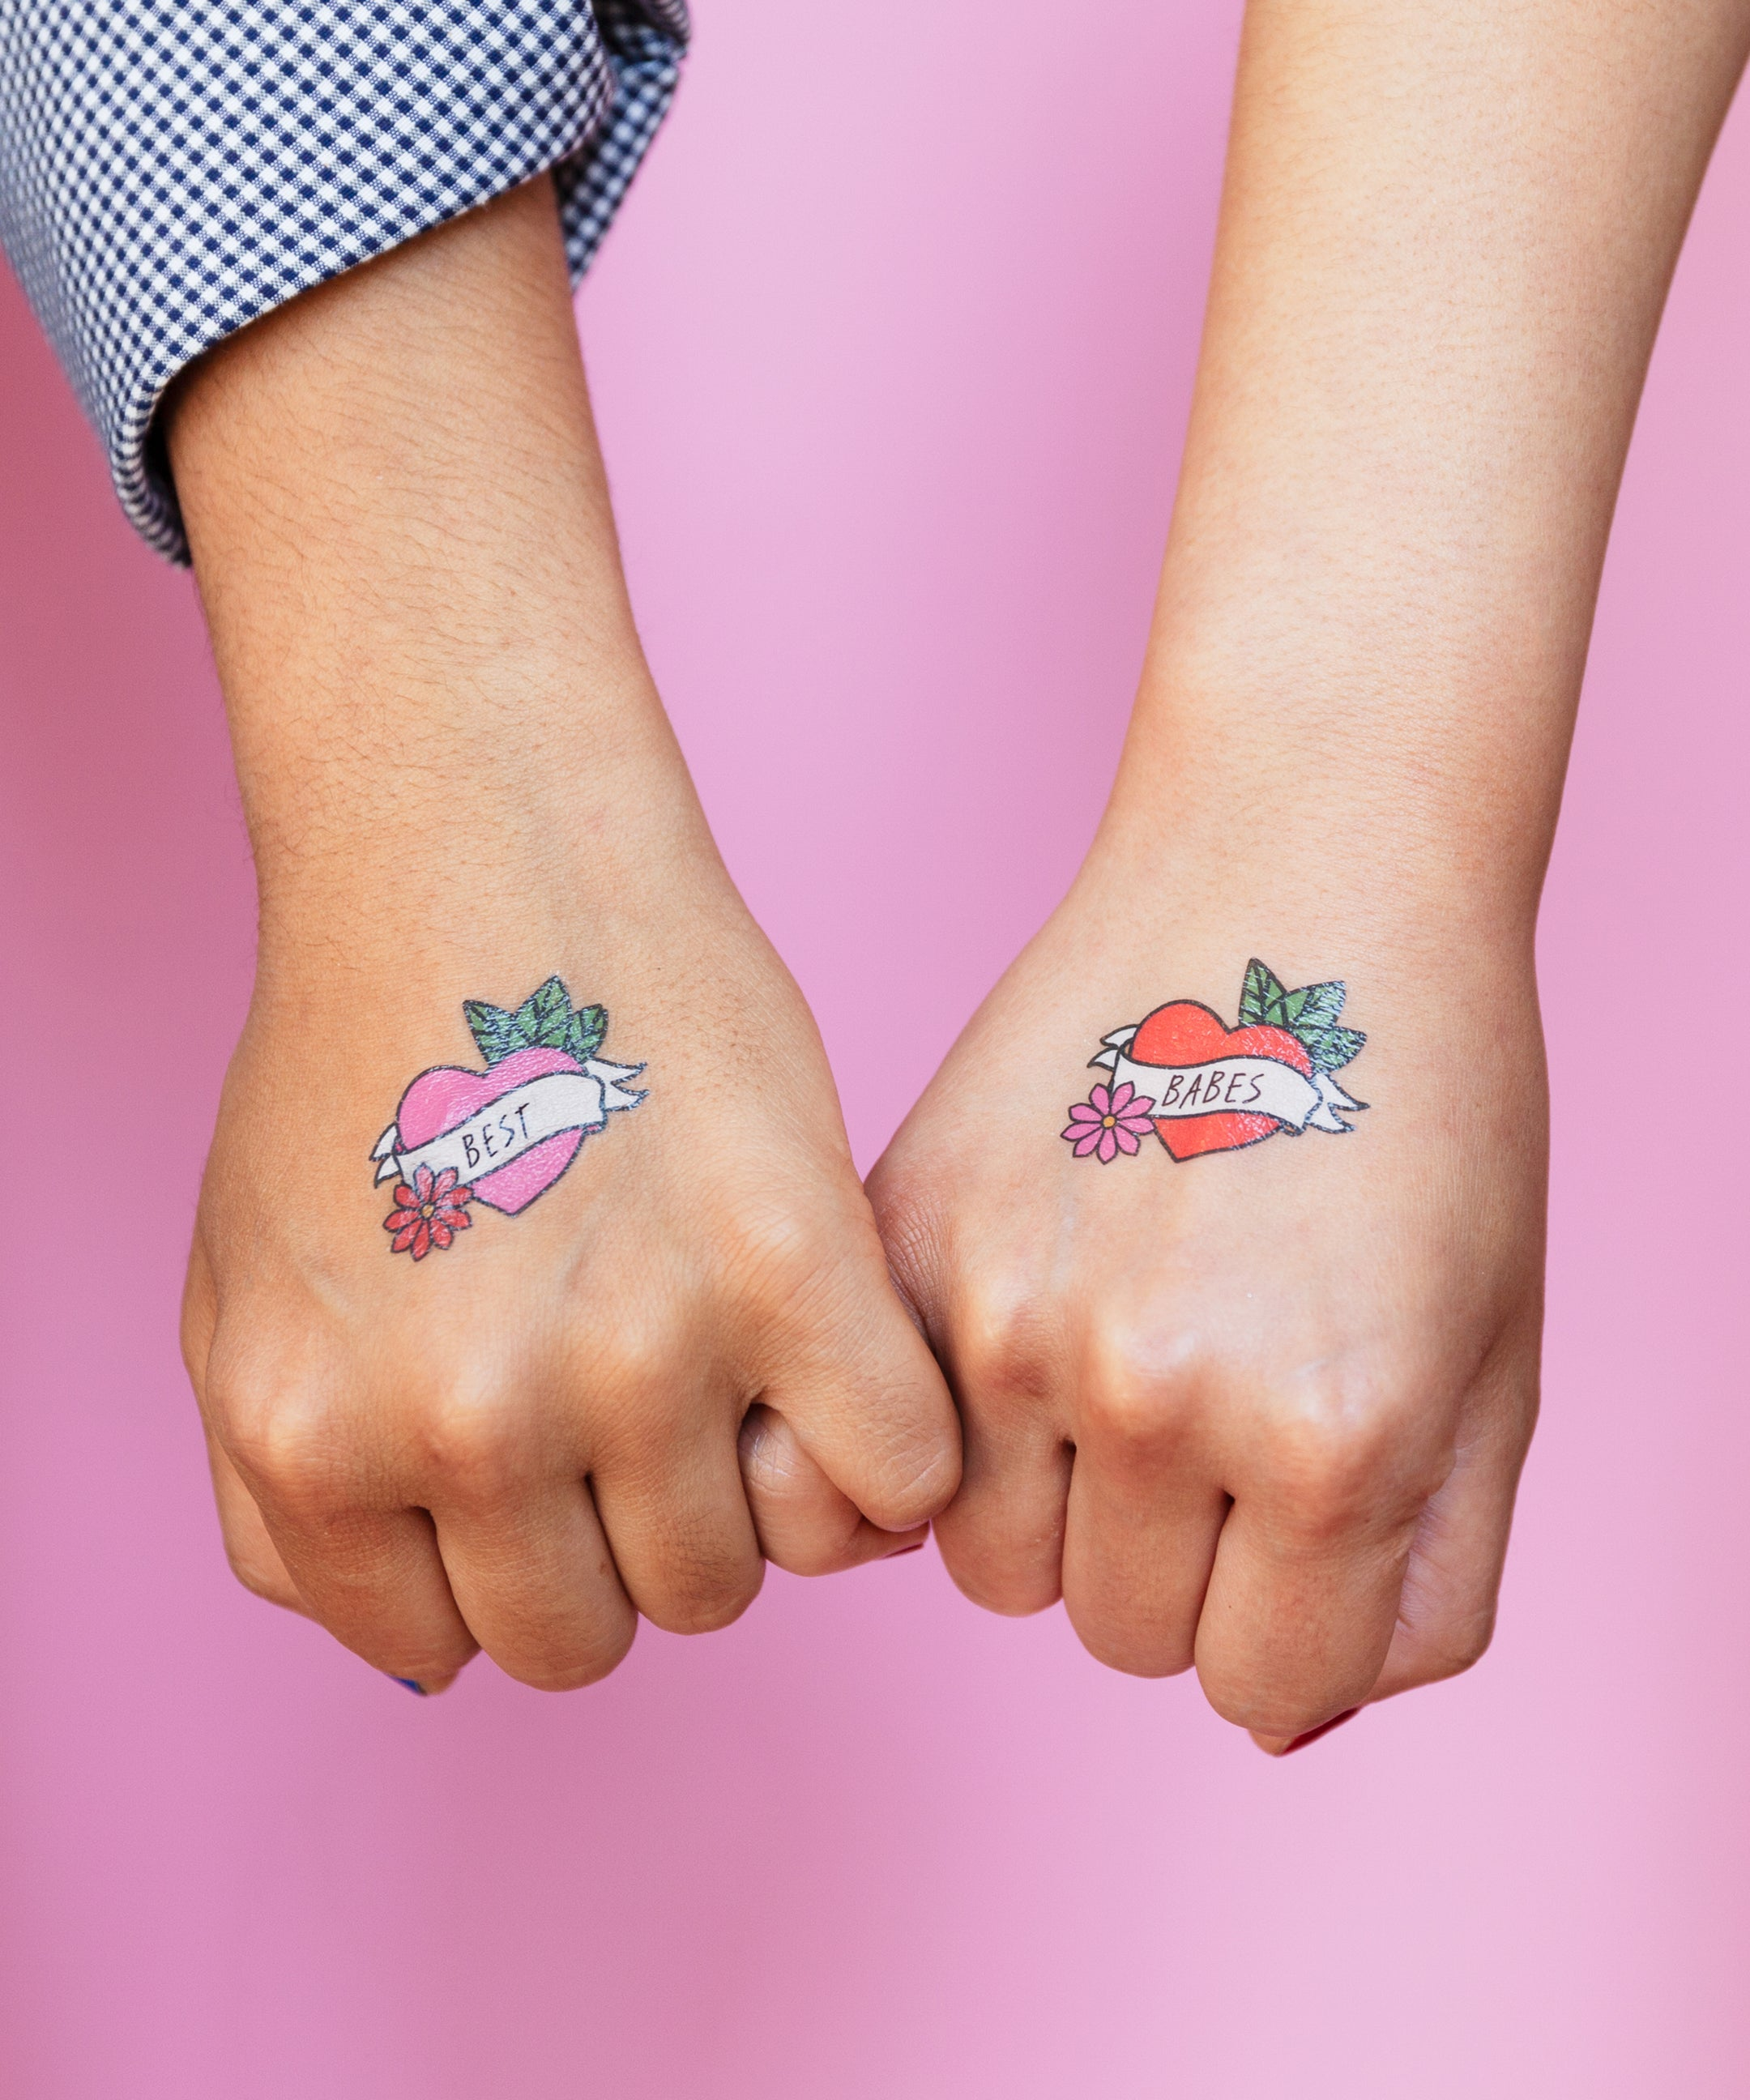 CUSTOM TATTOOS - TATTLY – Tattly Temporary Tattoos